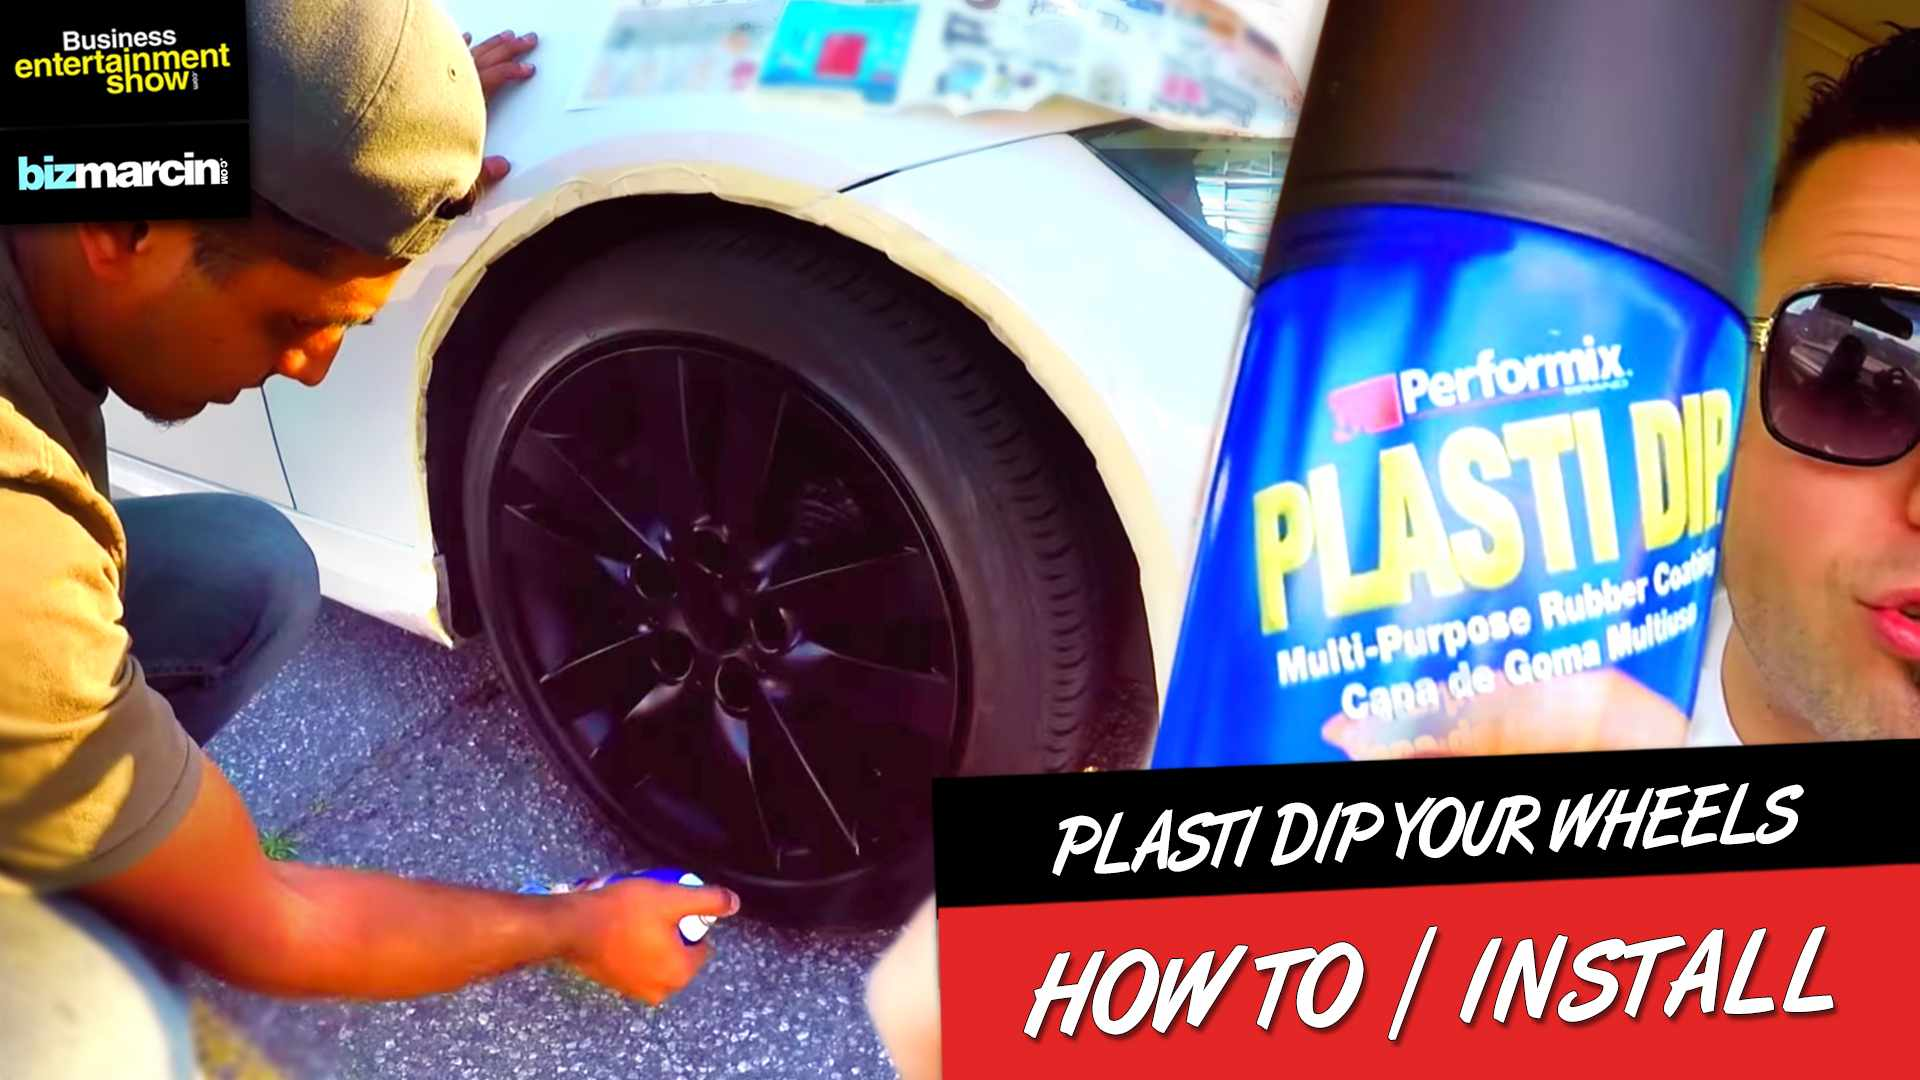 HOW TO PLASTI DIP YOUR WHEELS Without Taking them Off - Complete Guide Start to Finish